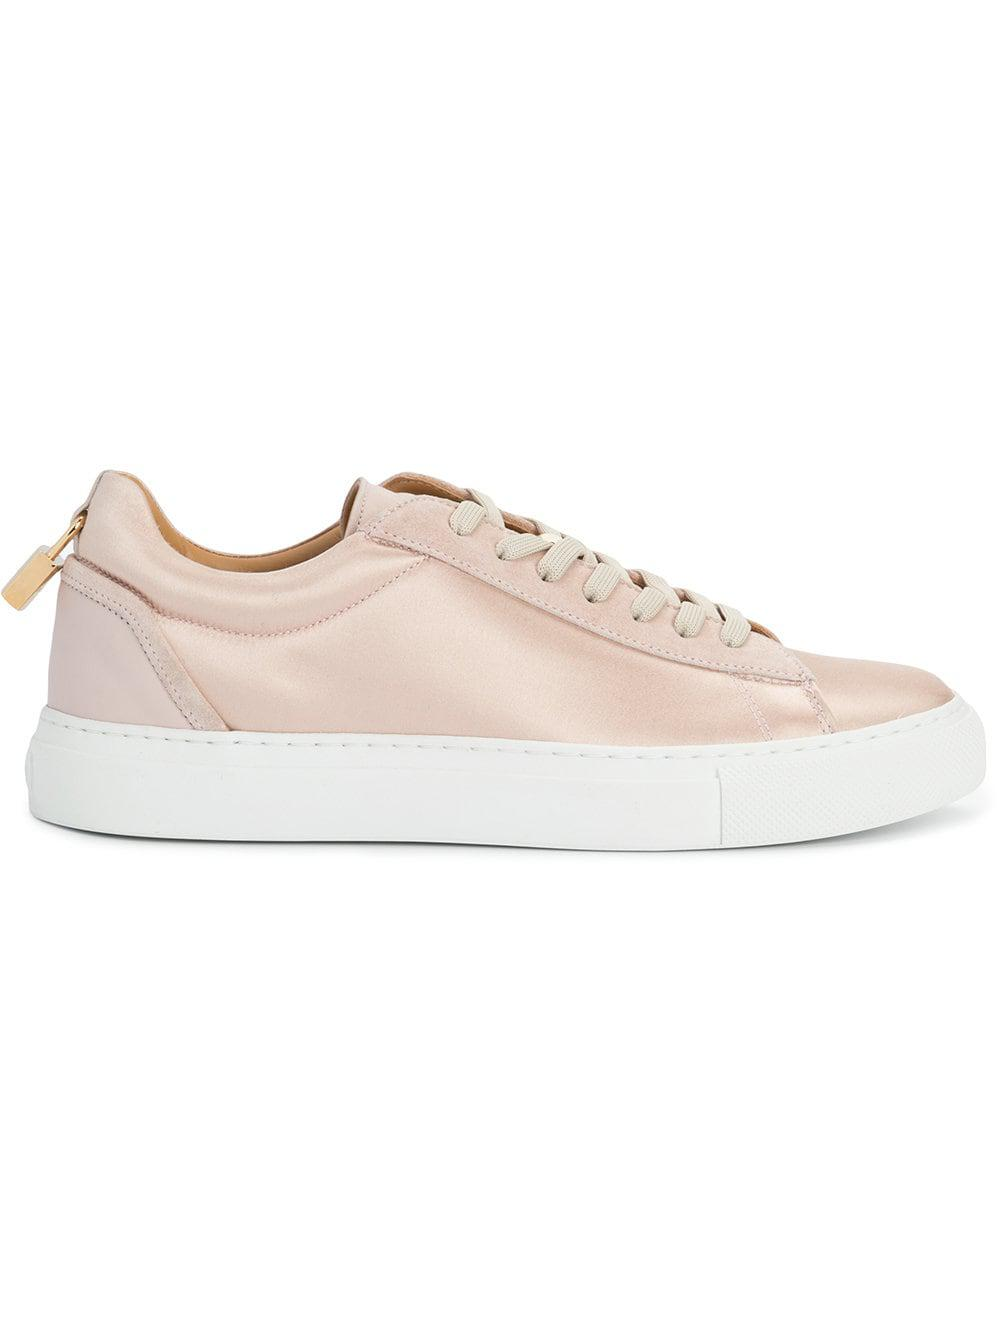 Buscemi Leather Tennis Low Top Sneakers in Pink & Purple (Pink)